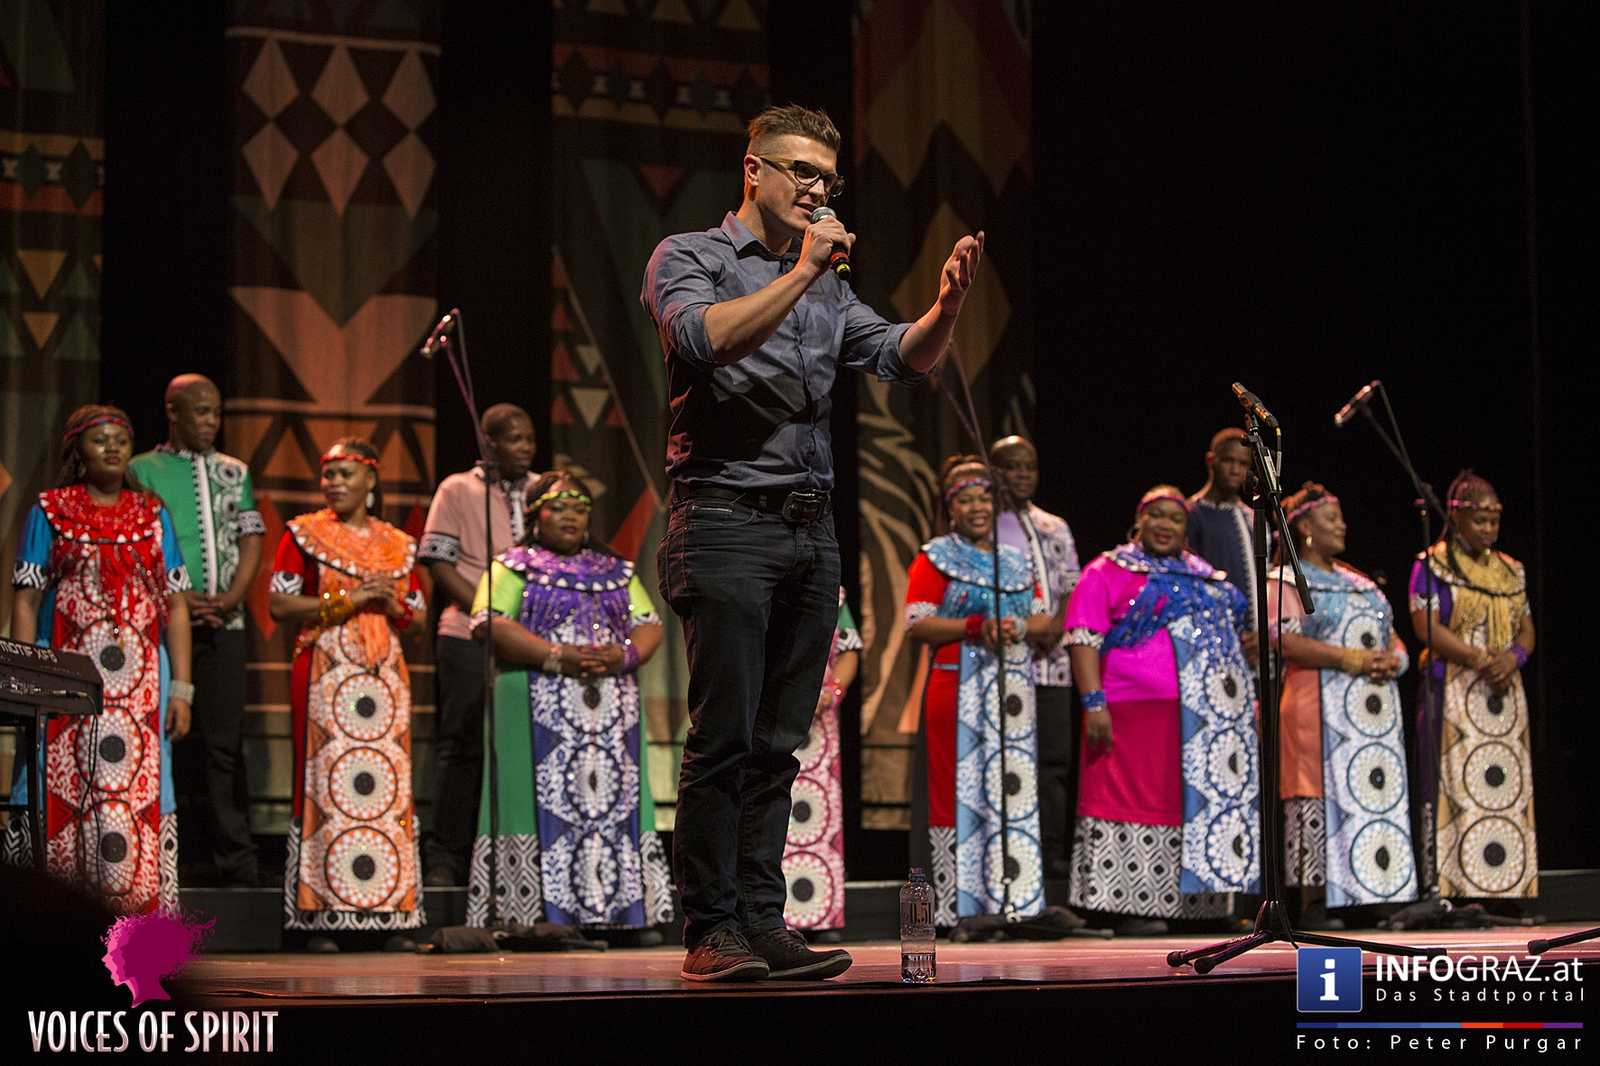 soweto gospel choir internationales chorfestival statdthalle graz voices of spirit eroeffnung festivals 2016 115